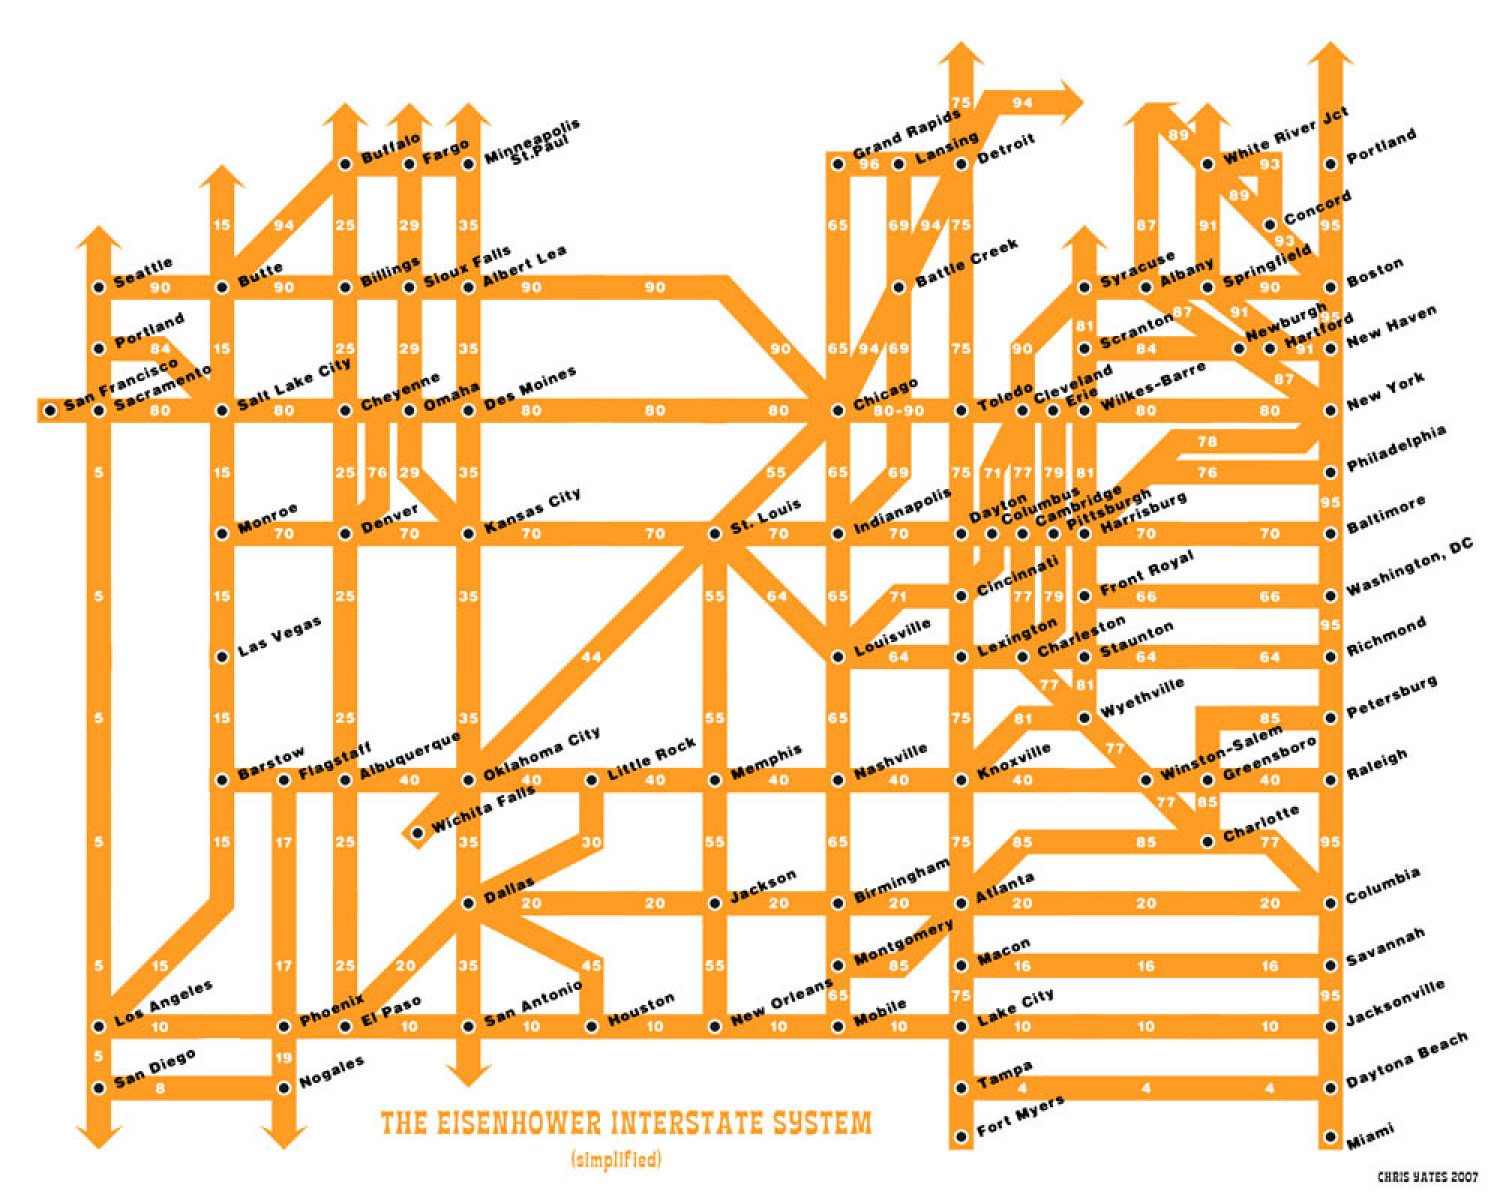 The Eisenhower Interstate System  Infographic